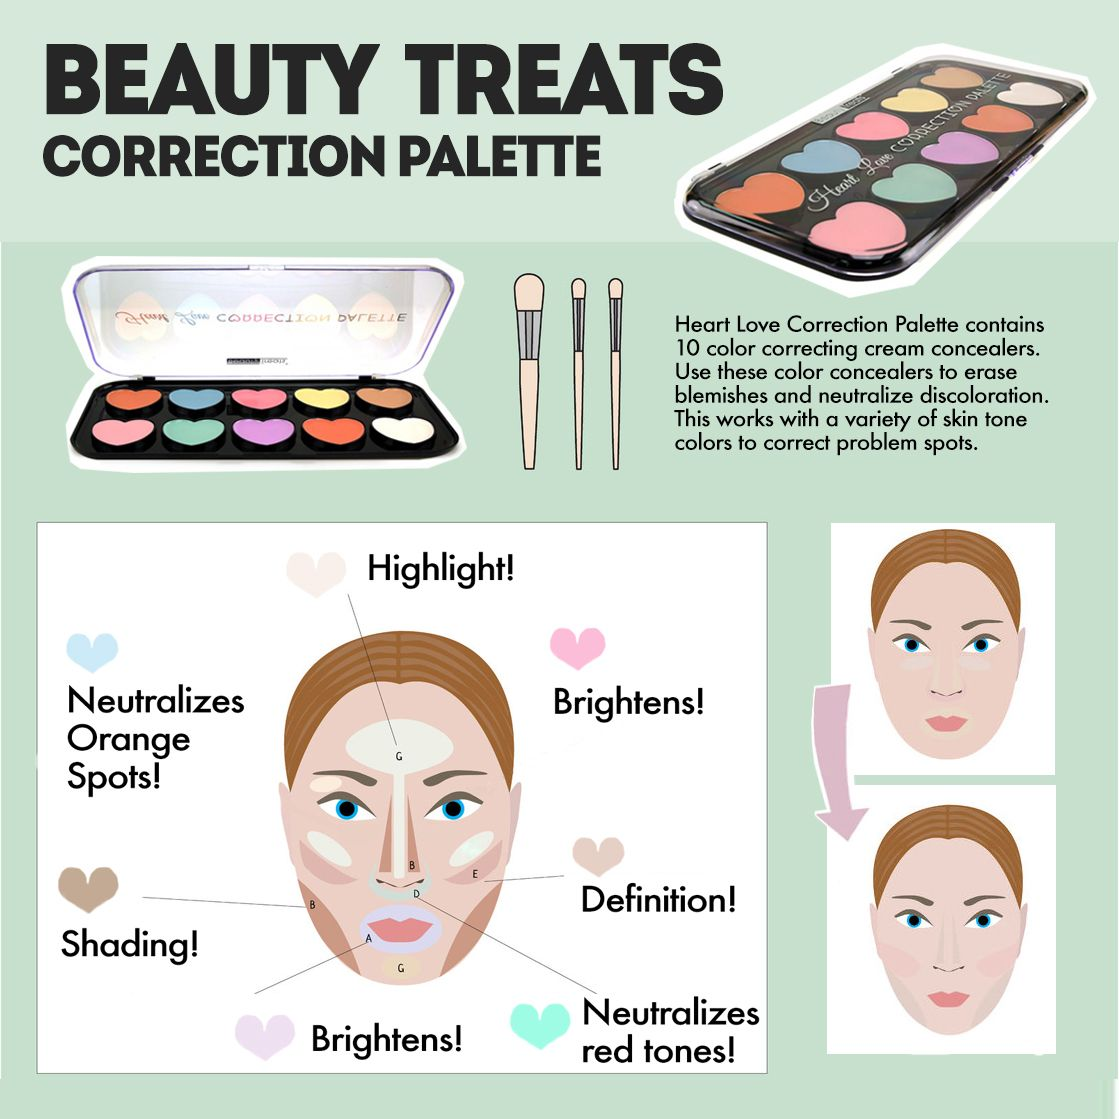 Heart Love Correction Palette contains 10 color correcting